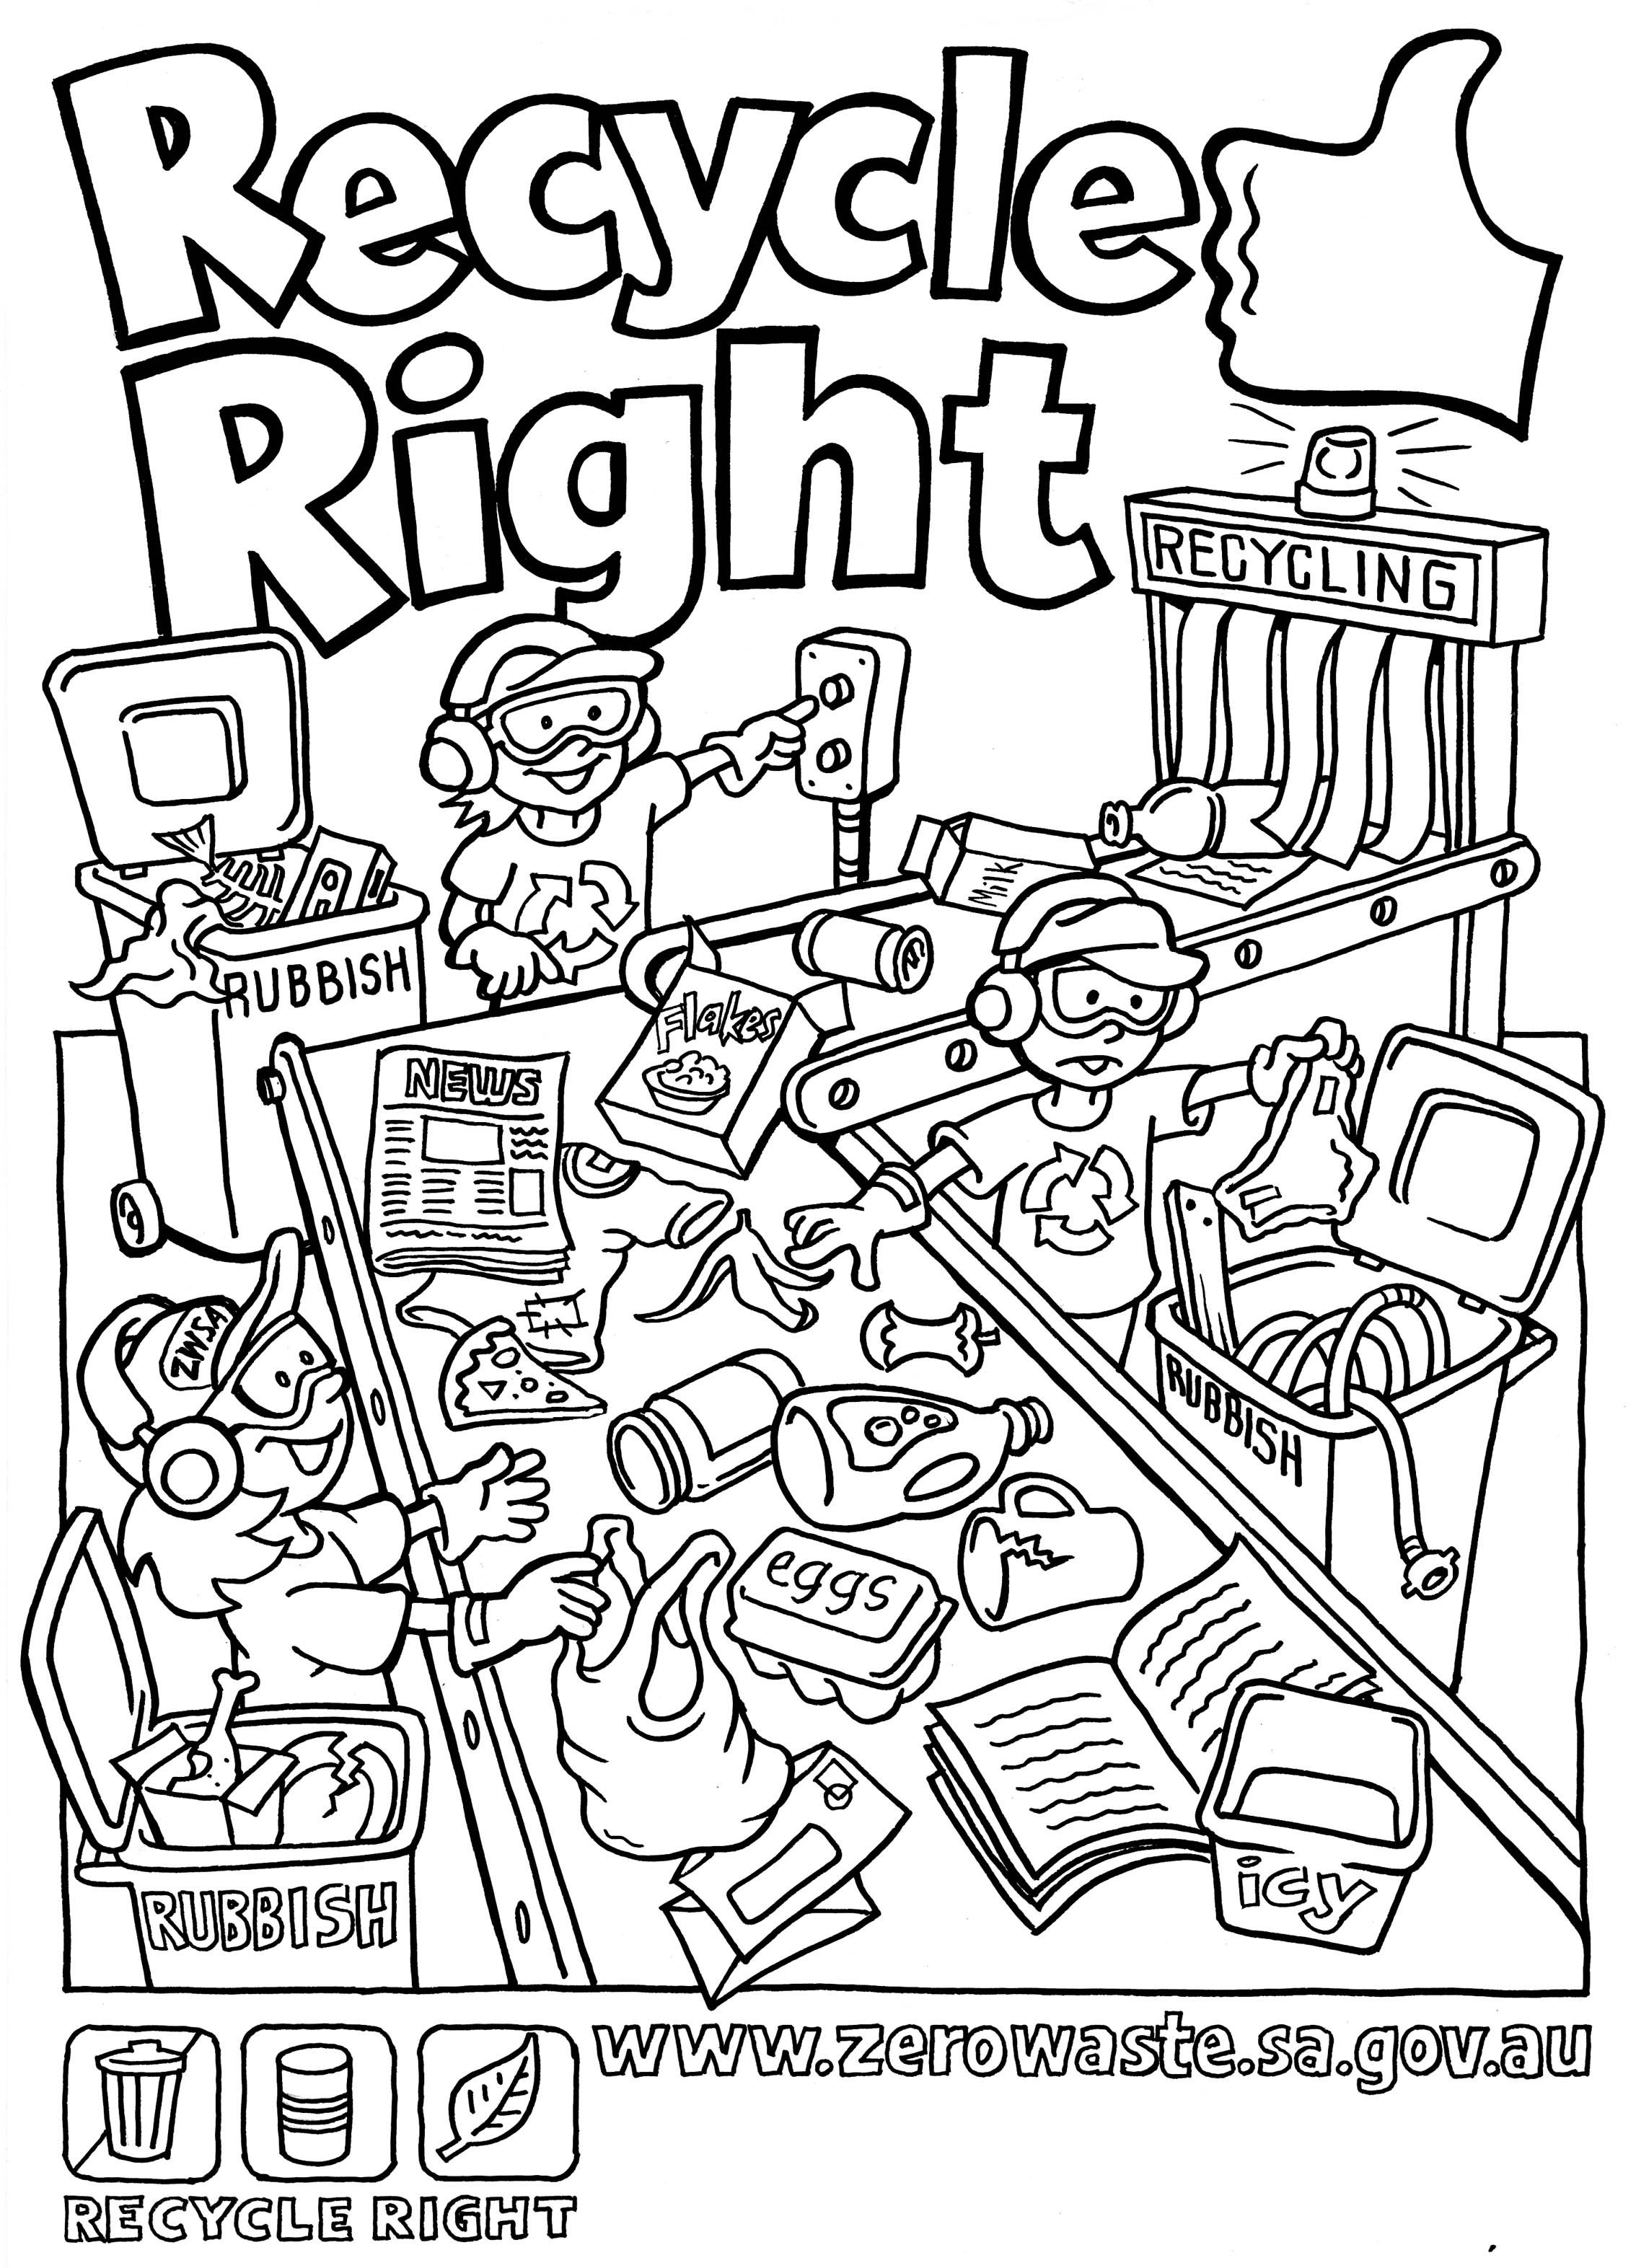 recycling coloring pages - recycling coloring pages for kids